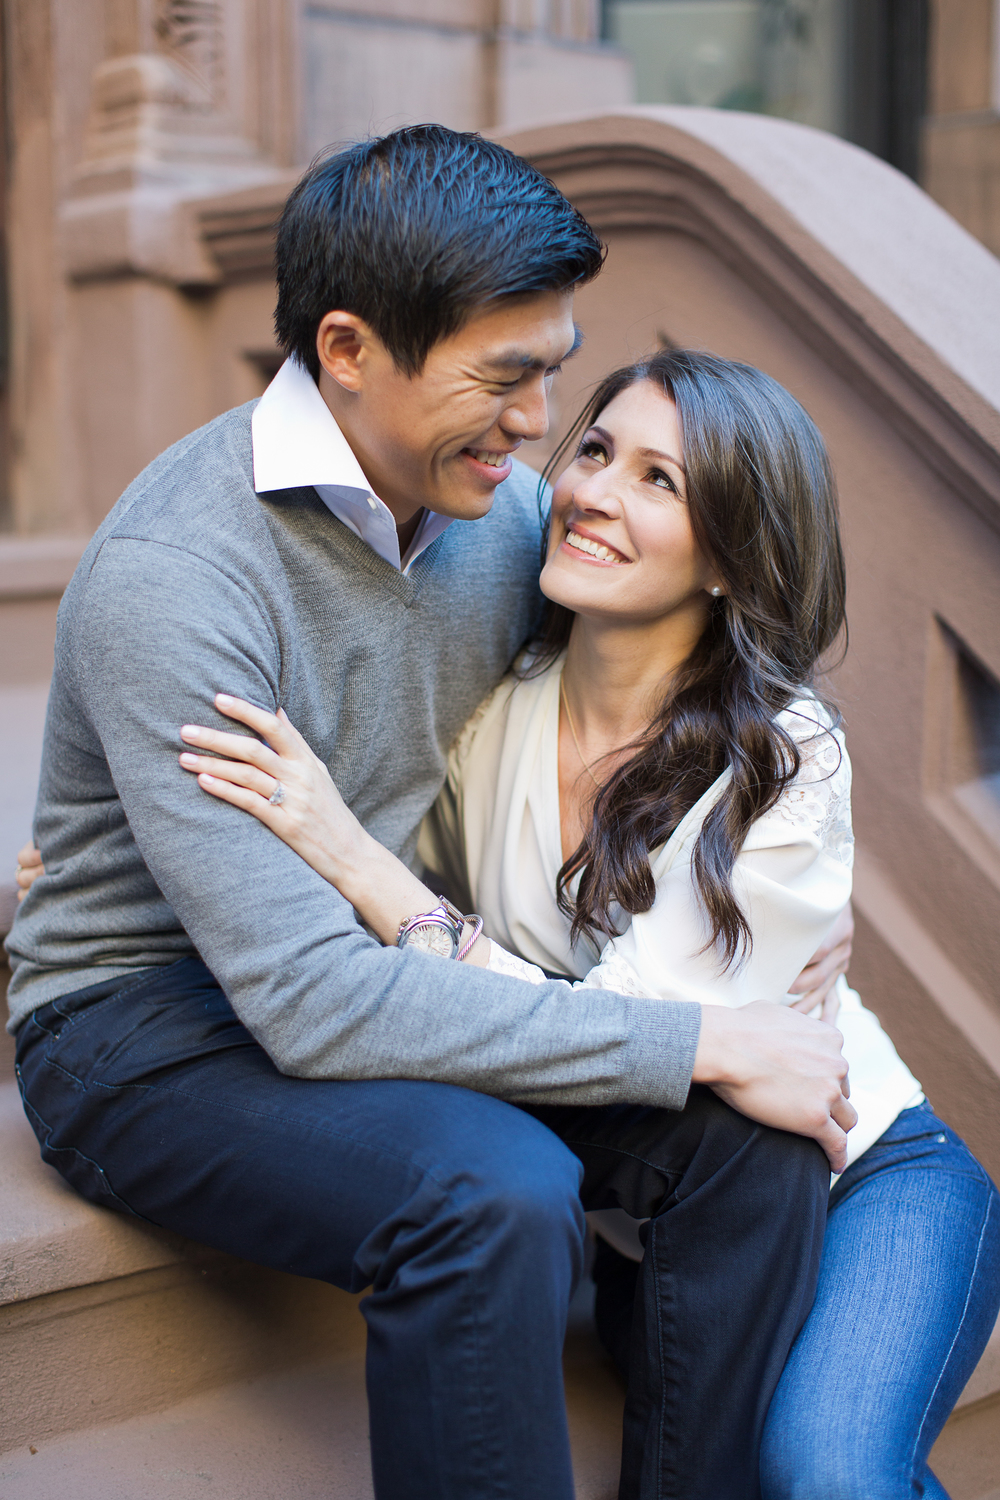 Melissa Kruse Photography - Emily + Kevin Engagement Session-63.jpg